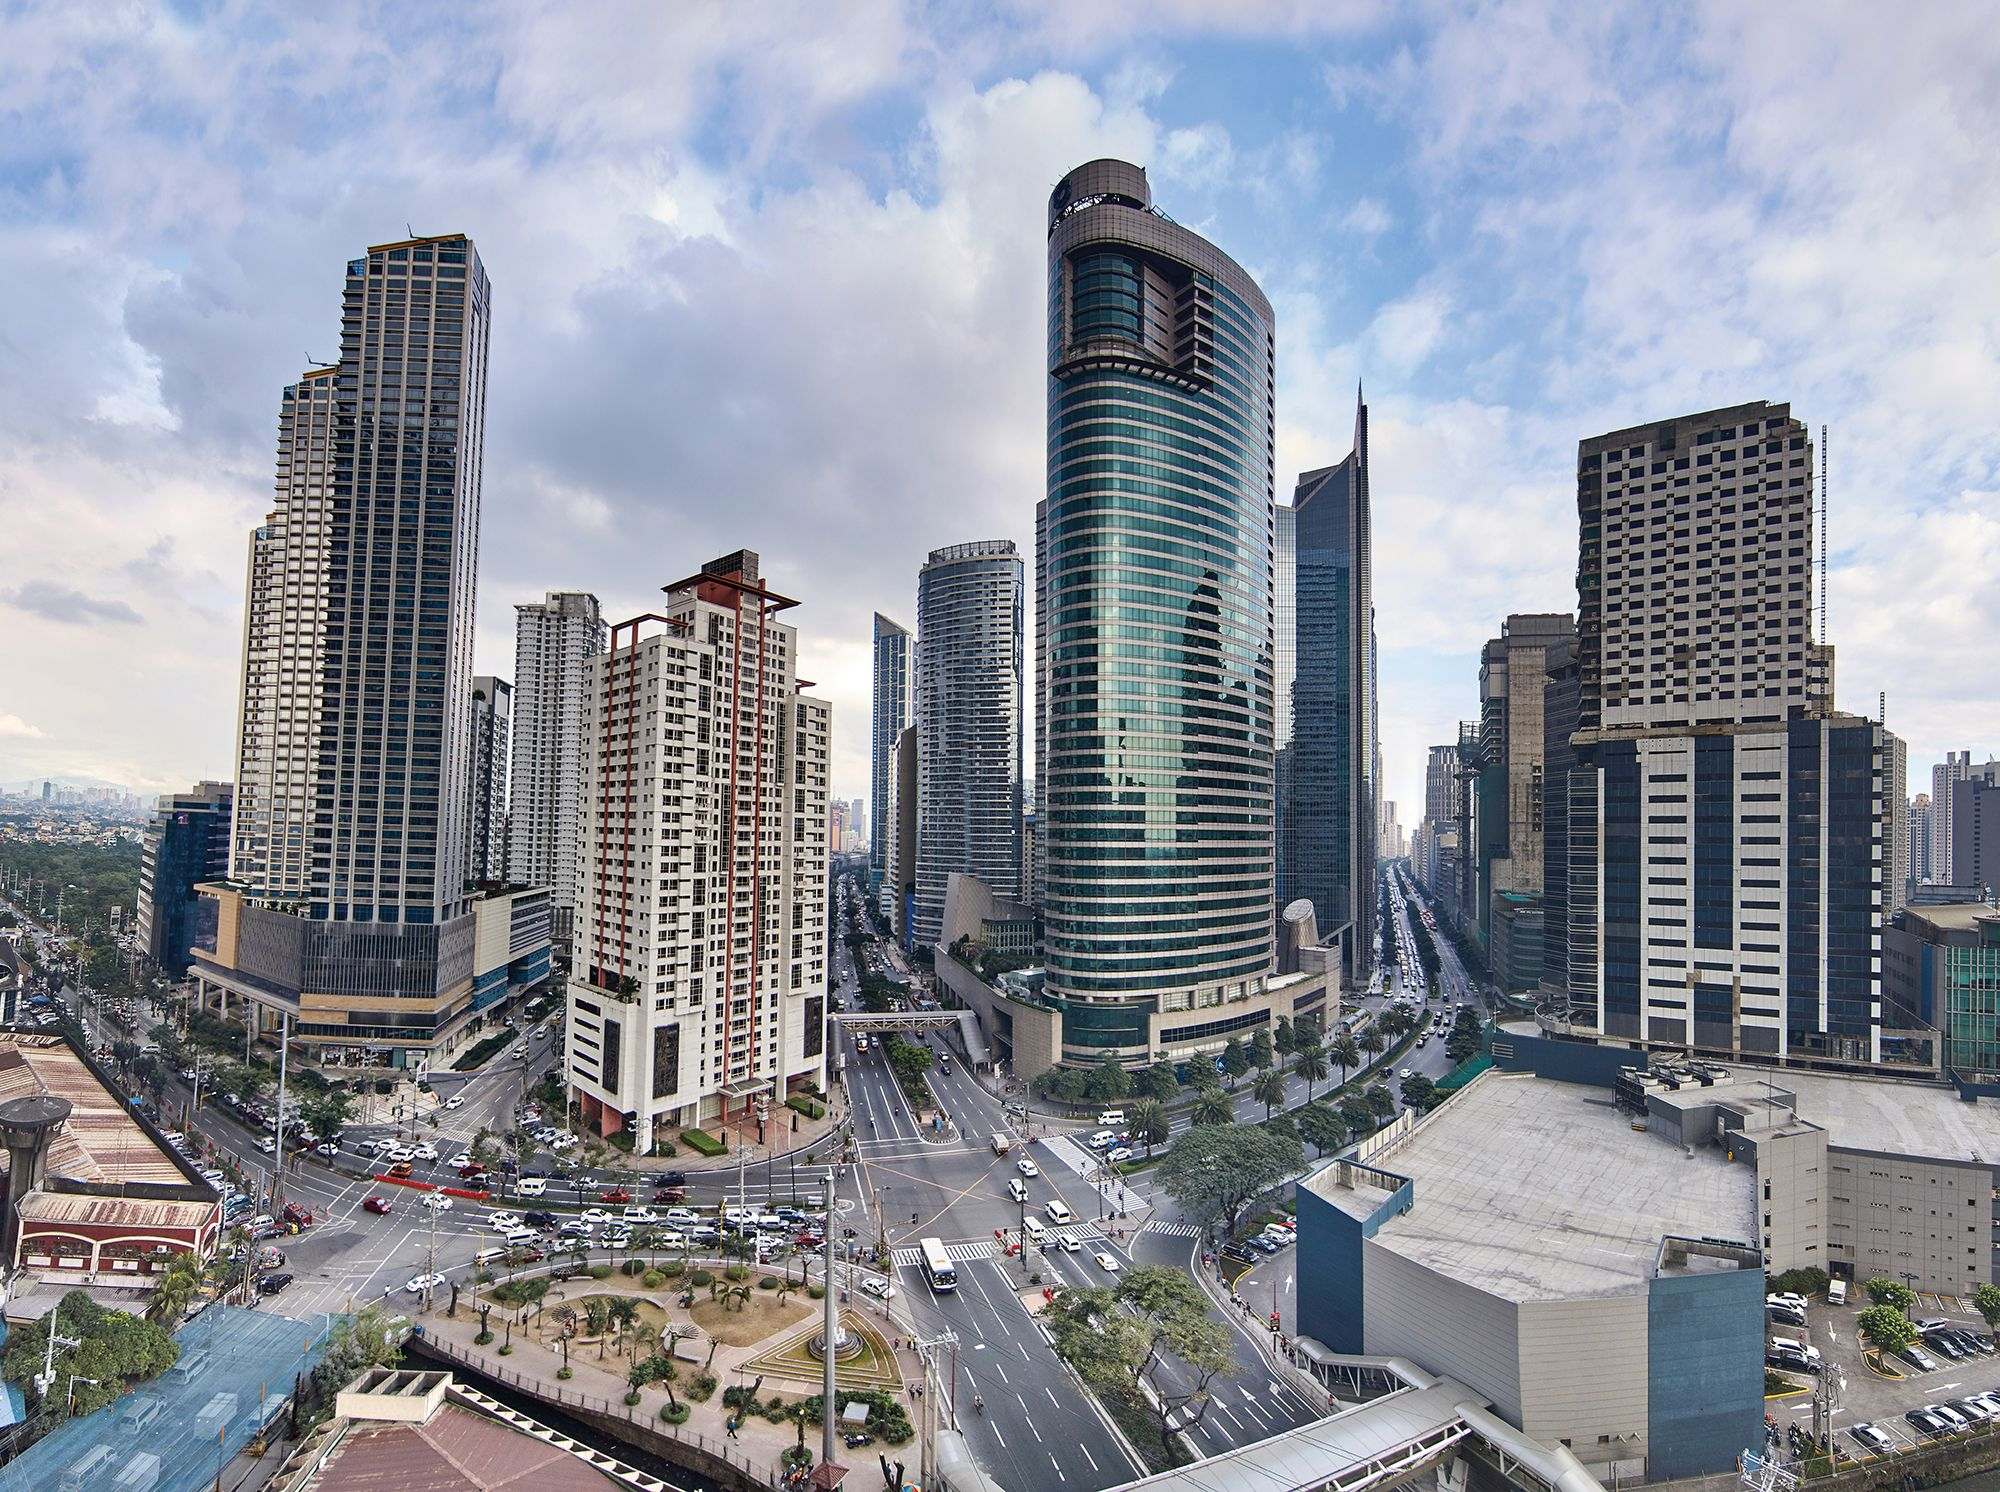 Aerial View of a Makati District, a city in the Philippines' Metro Manila region and is considered the financial, commercial and economic hub where the Philippine Stock Exchange (PSE) is located. It is also the preferred address of large multinational corporations.